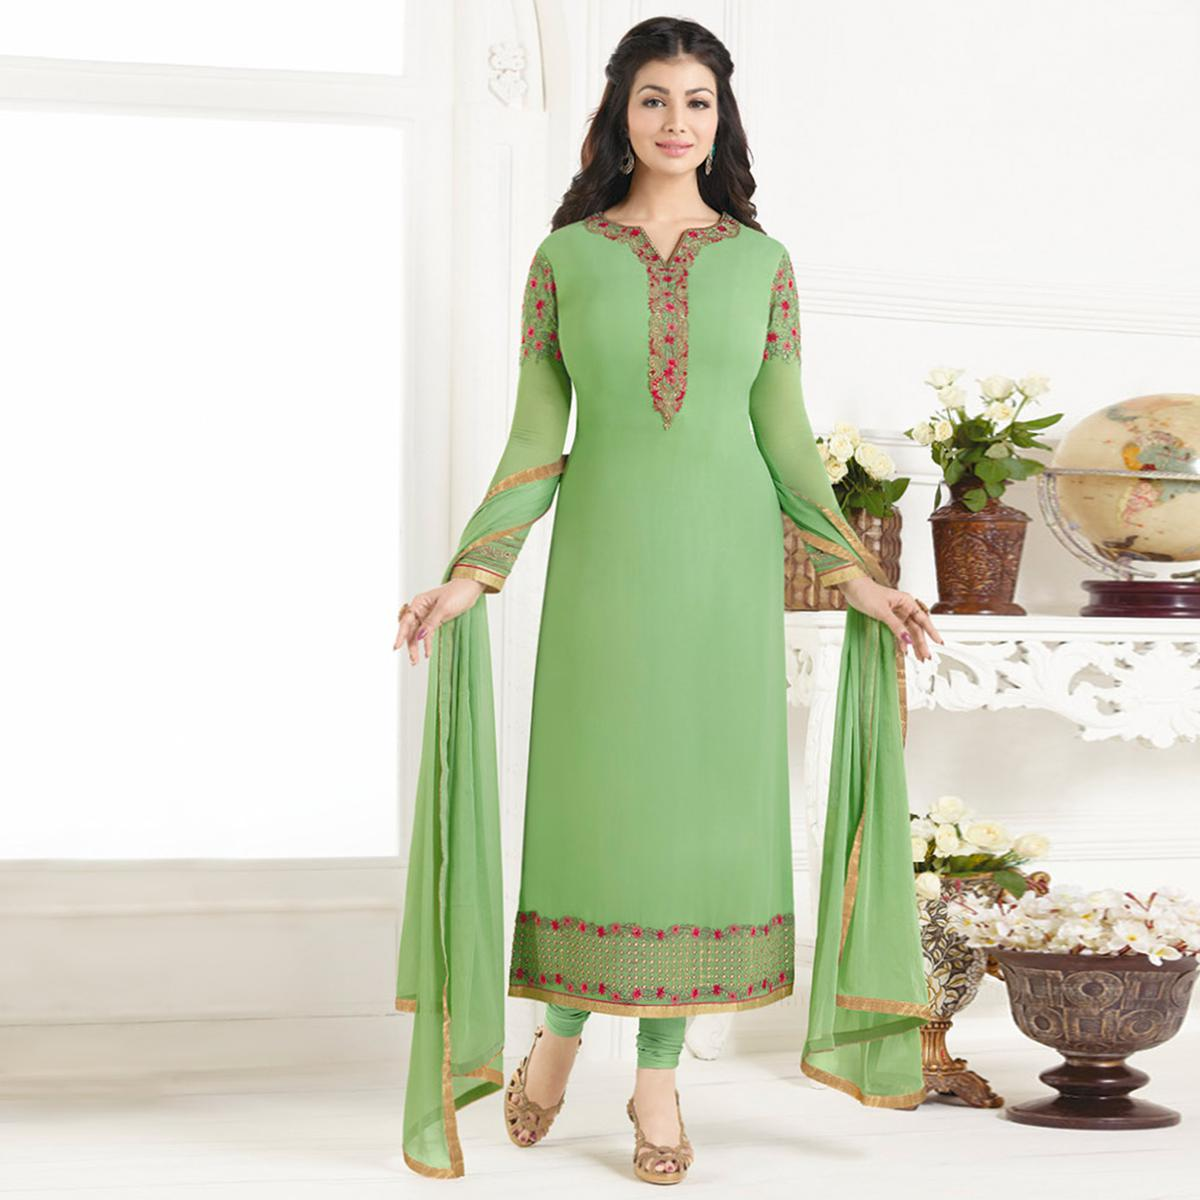 Staring Green Colored Party Wear Embroidered Pure Georgette Suit